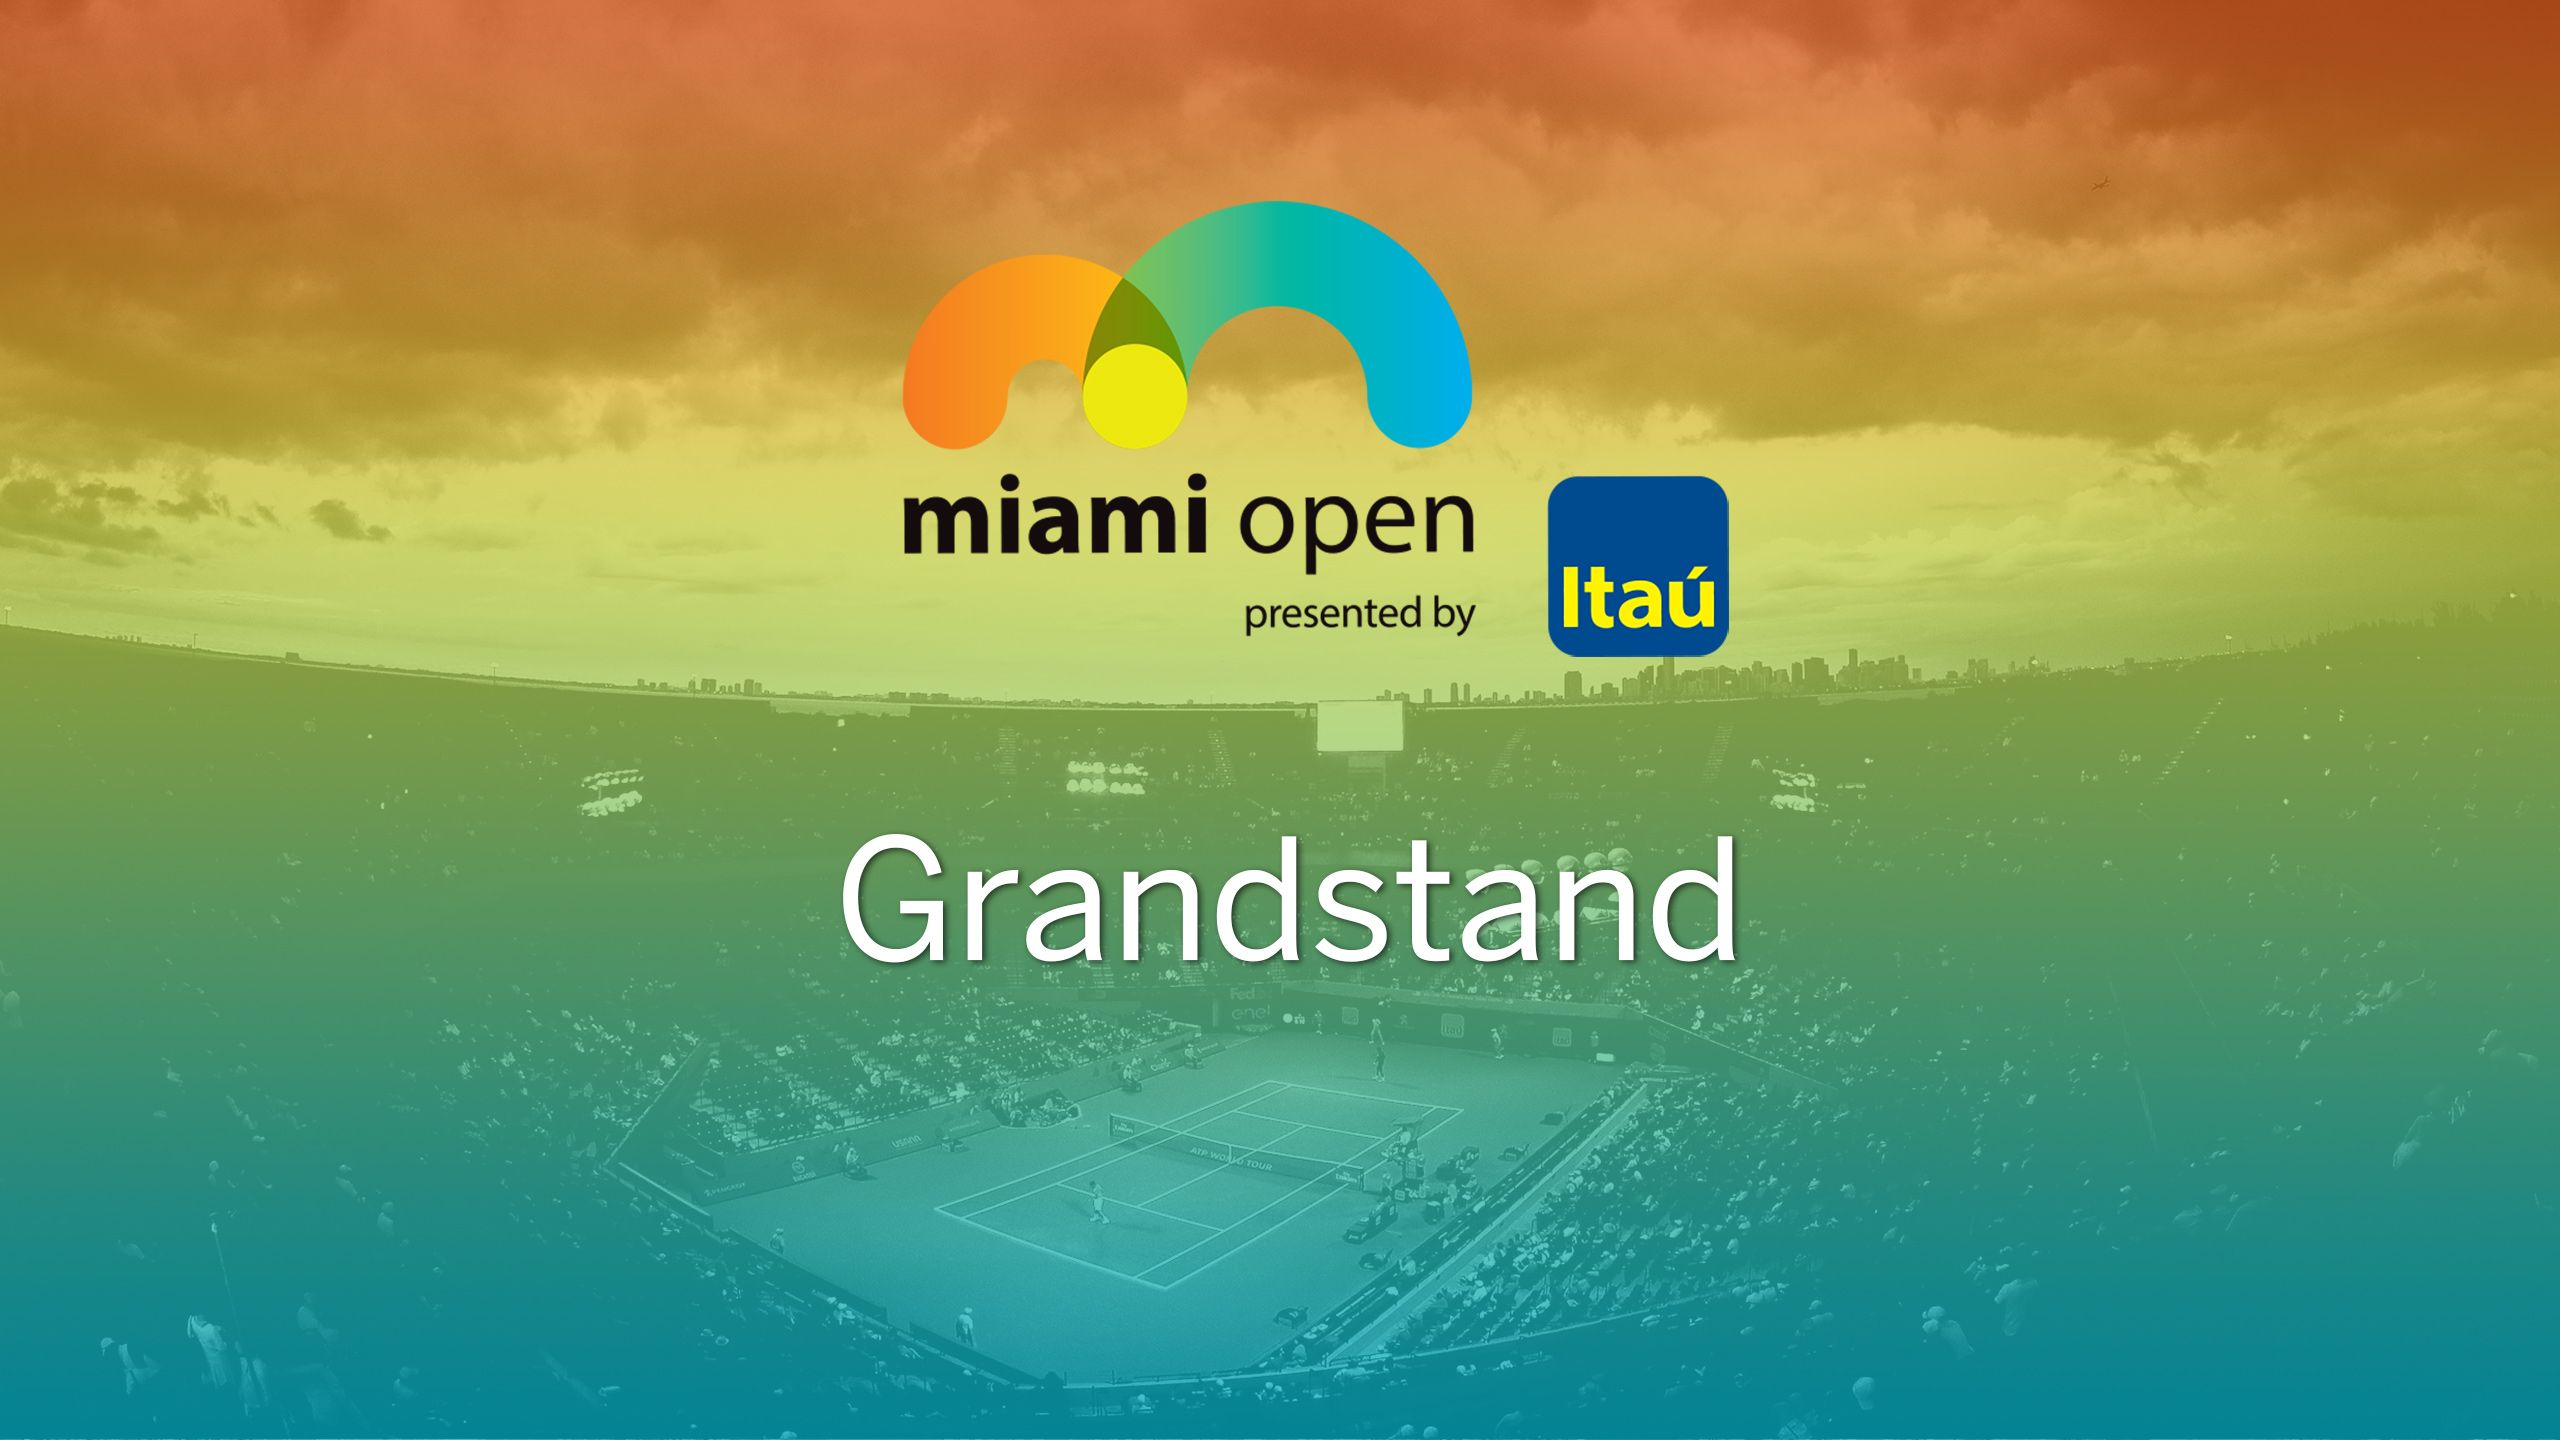 Miami Open - Grandstand (Second Round)